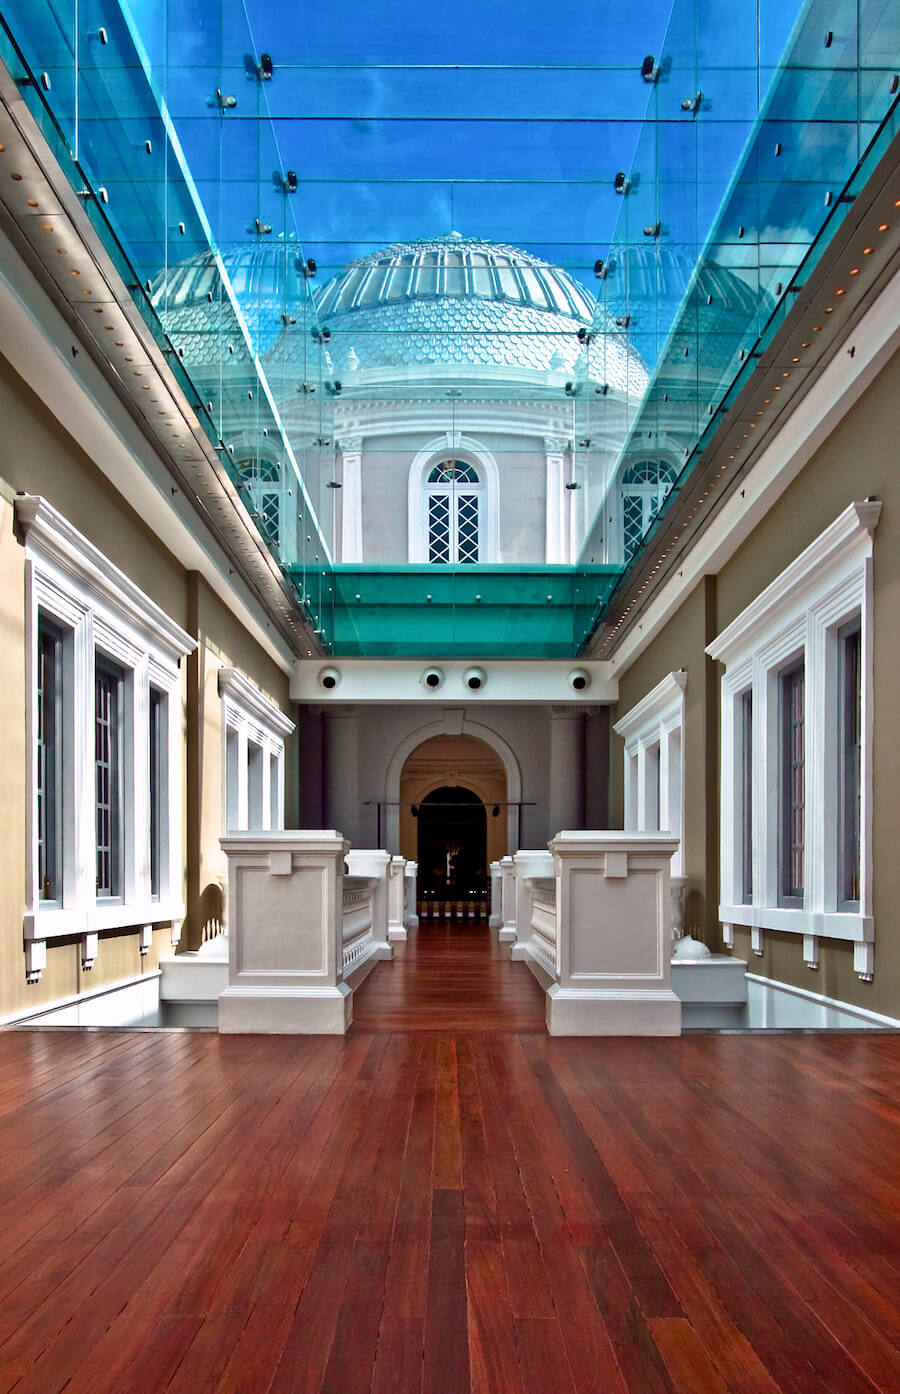 A passageway in the National Museum of Singapore. Source: someformofhuman